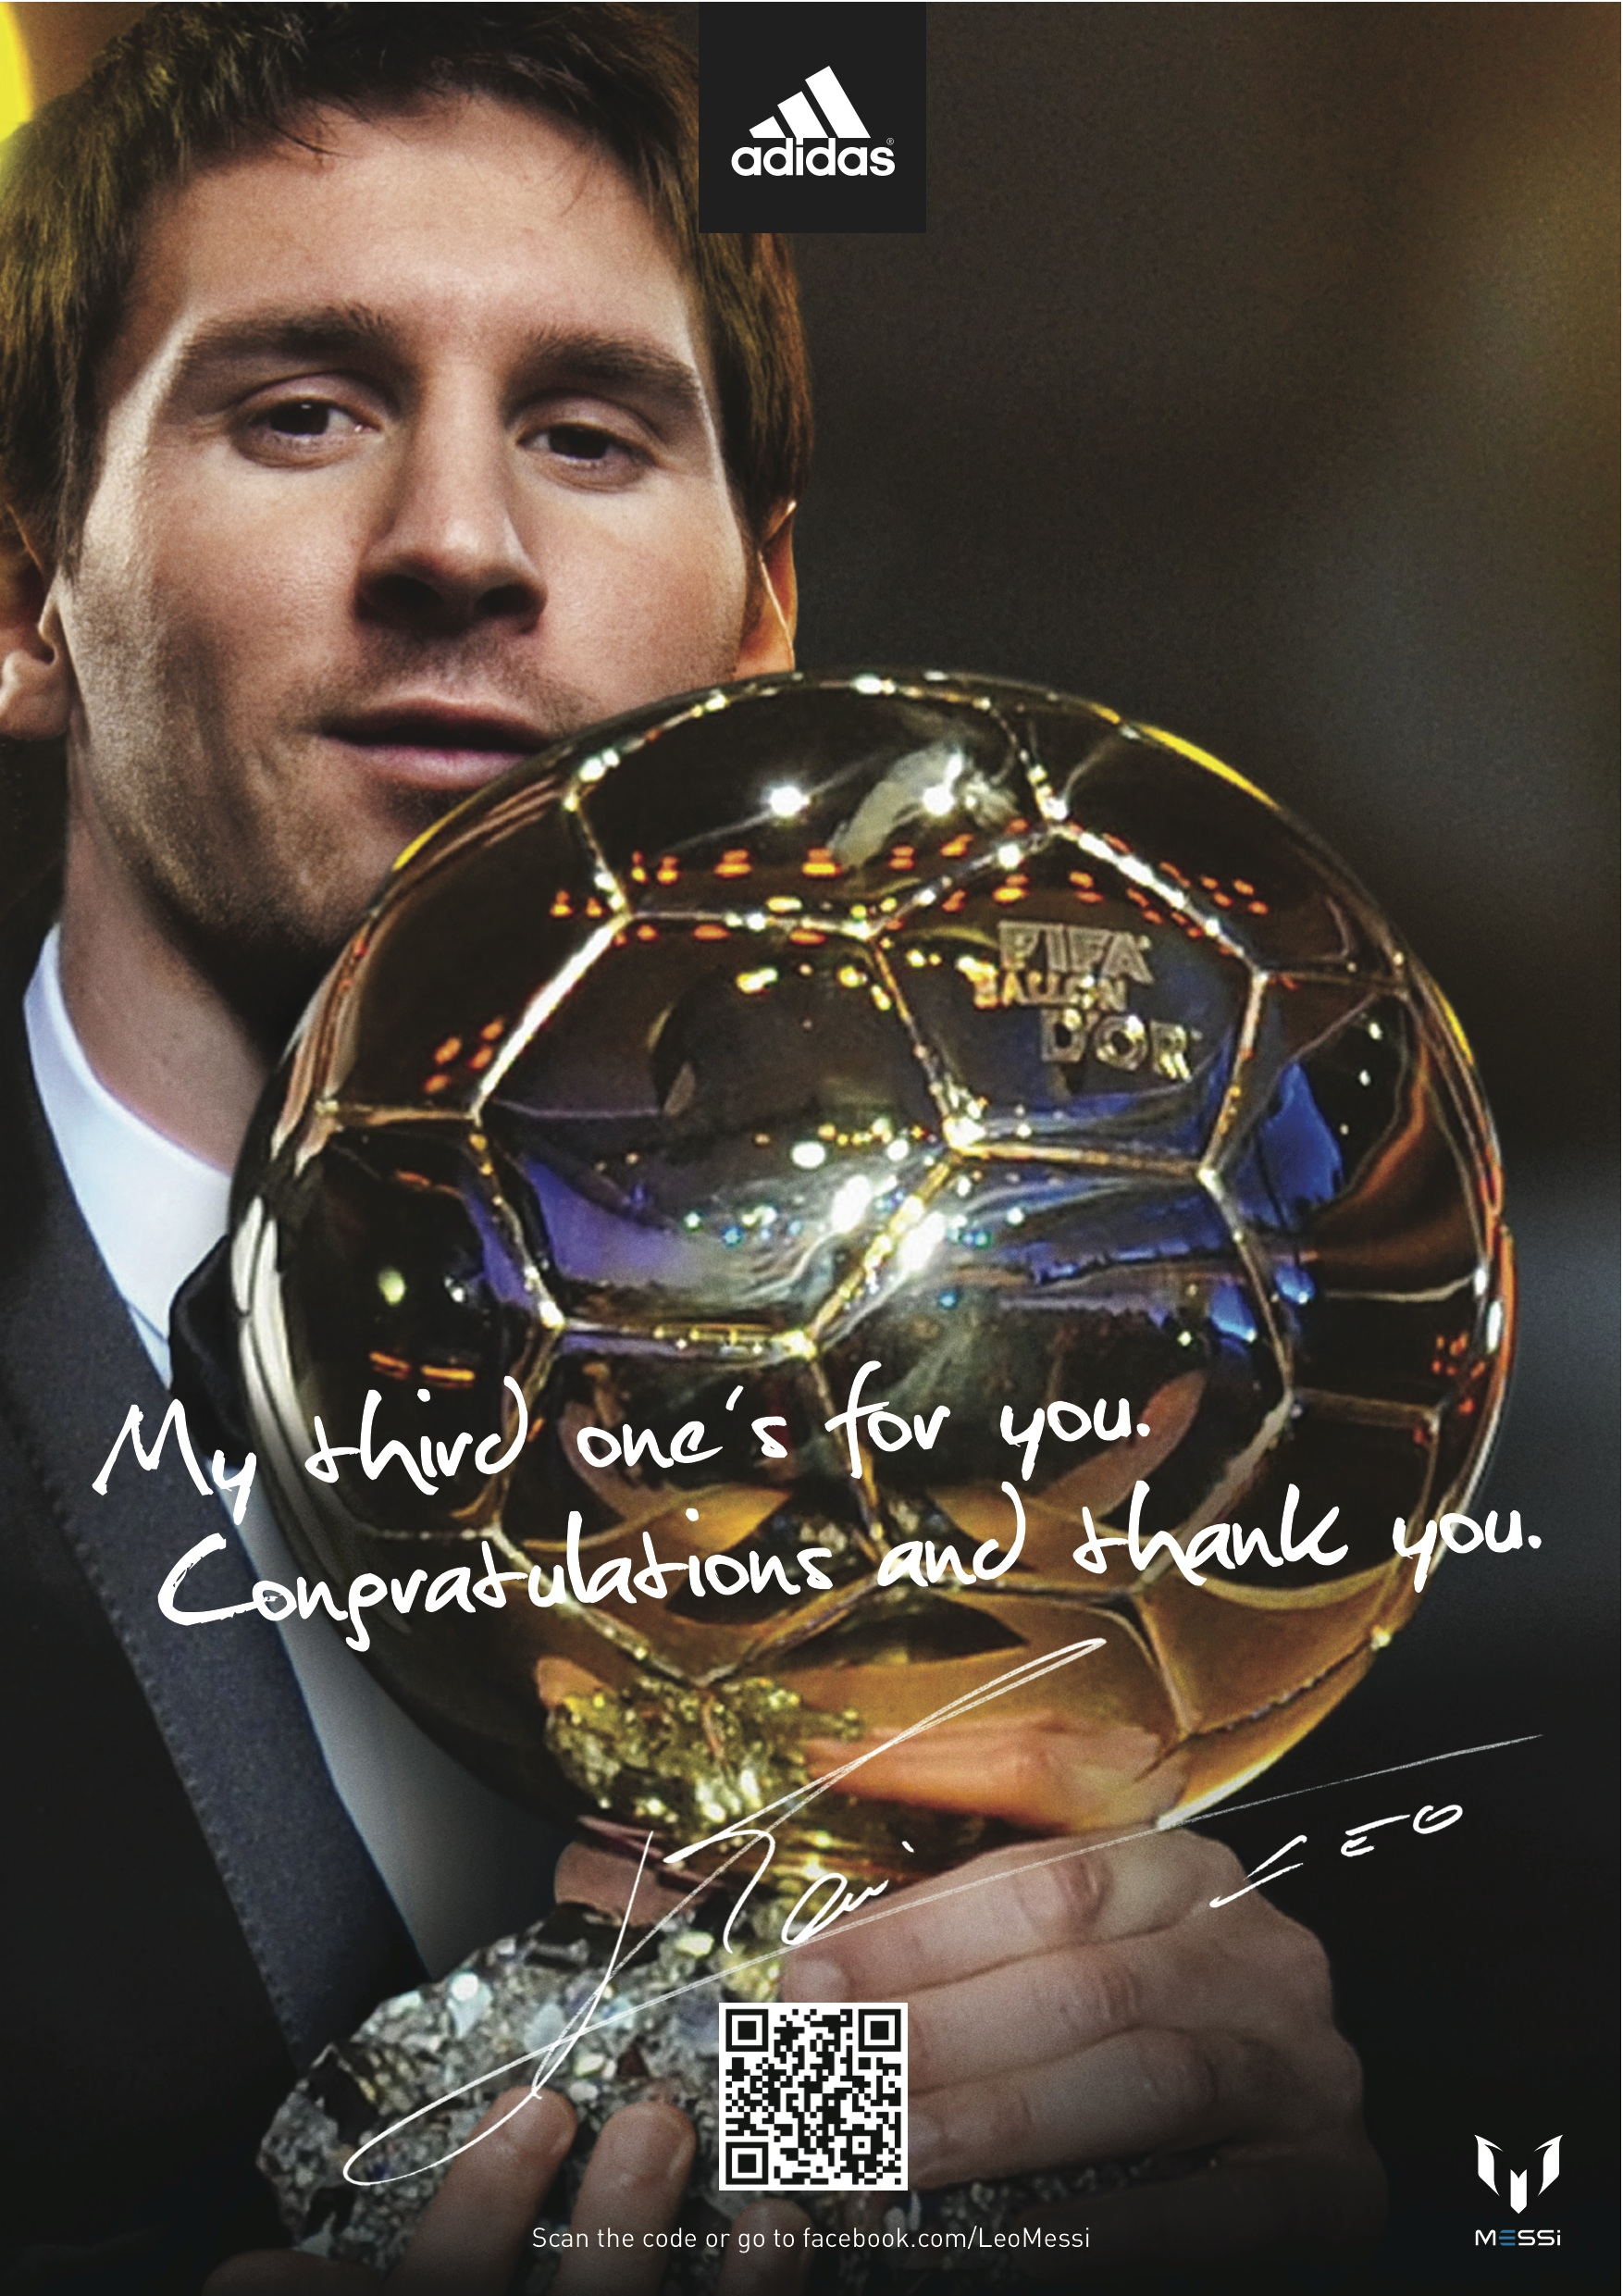 ADIDAS: LEO MESSI FIFA PLAYER OF THE YEAR